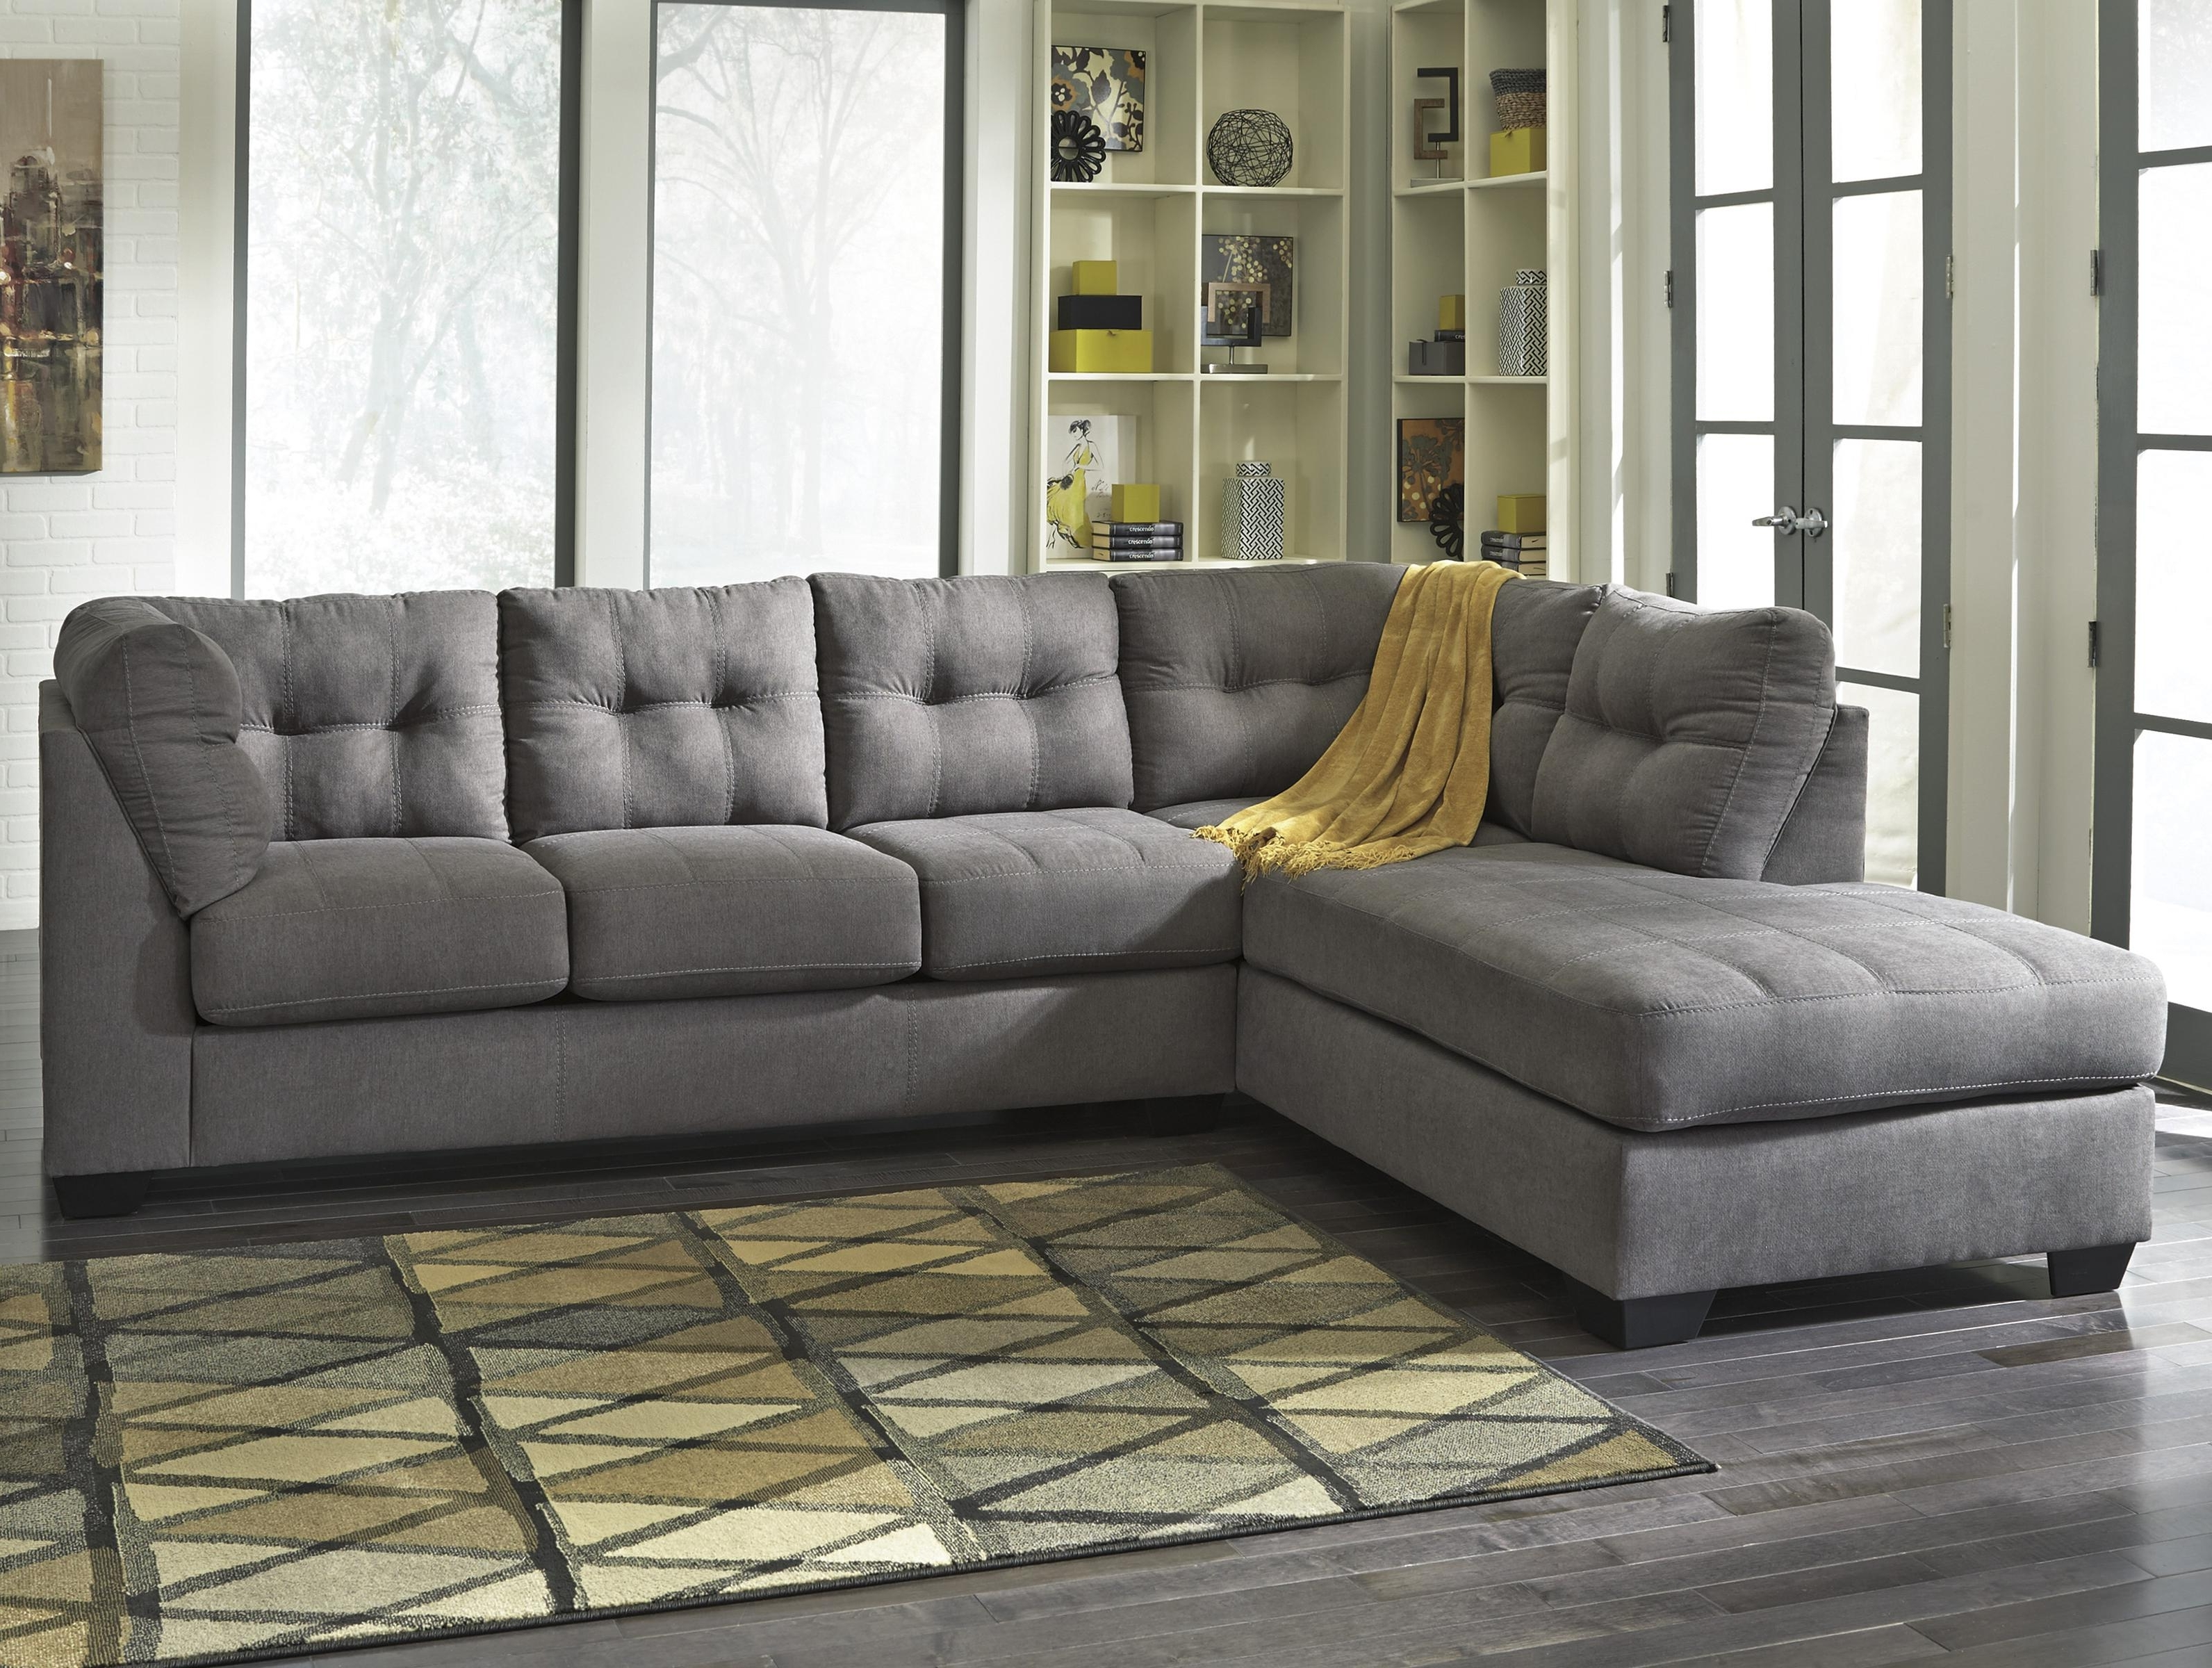 Ashley Furniture Sofa Chaises Pertaining To Most Popular Benchcraft Maier – Charcoal 2 Piece Sectional W/ Sleeper Sofa (View 2 of 15)